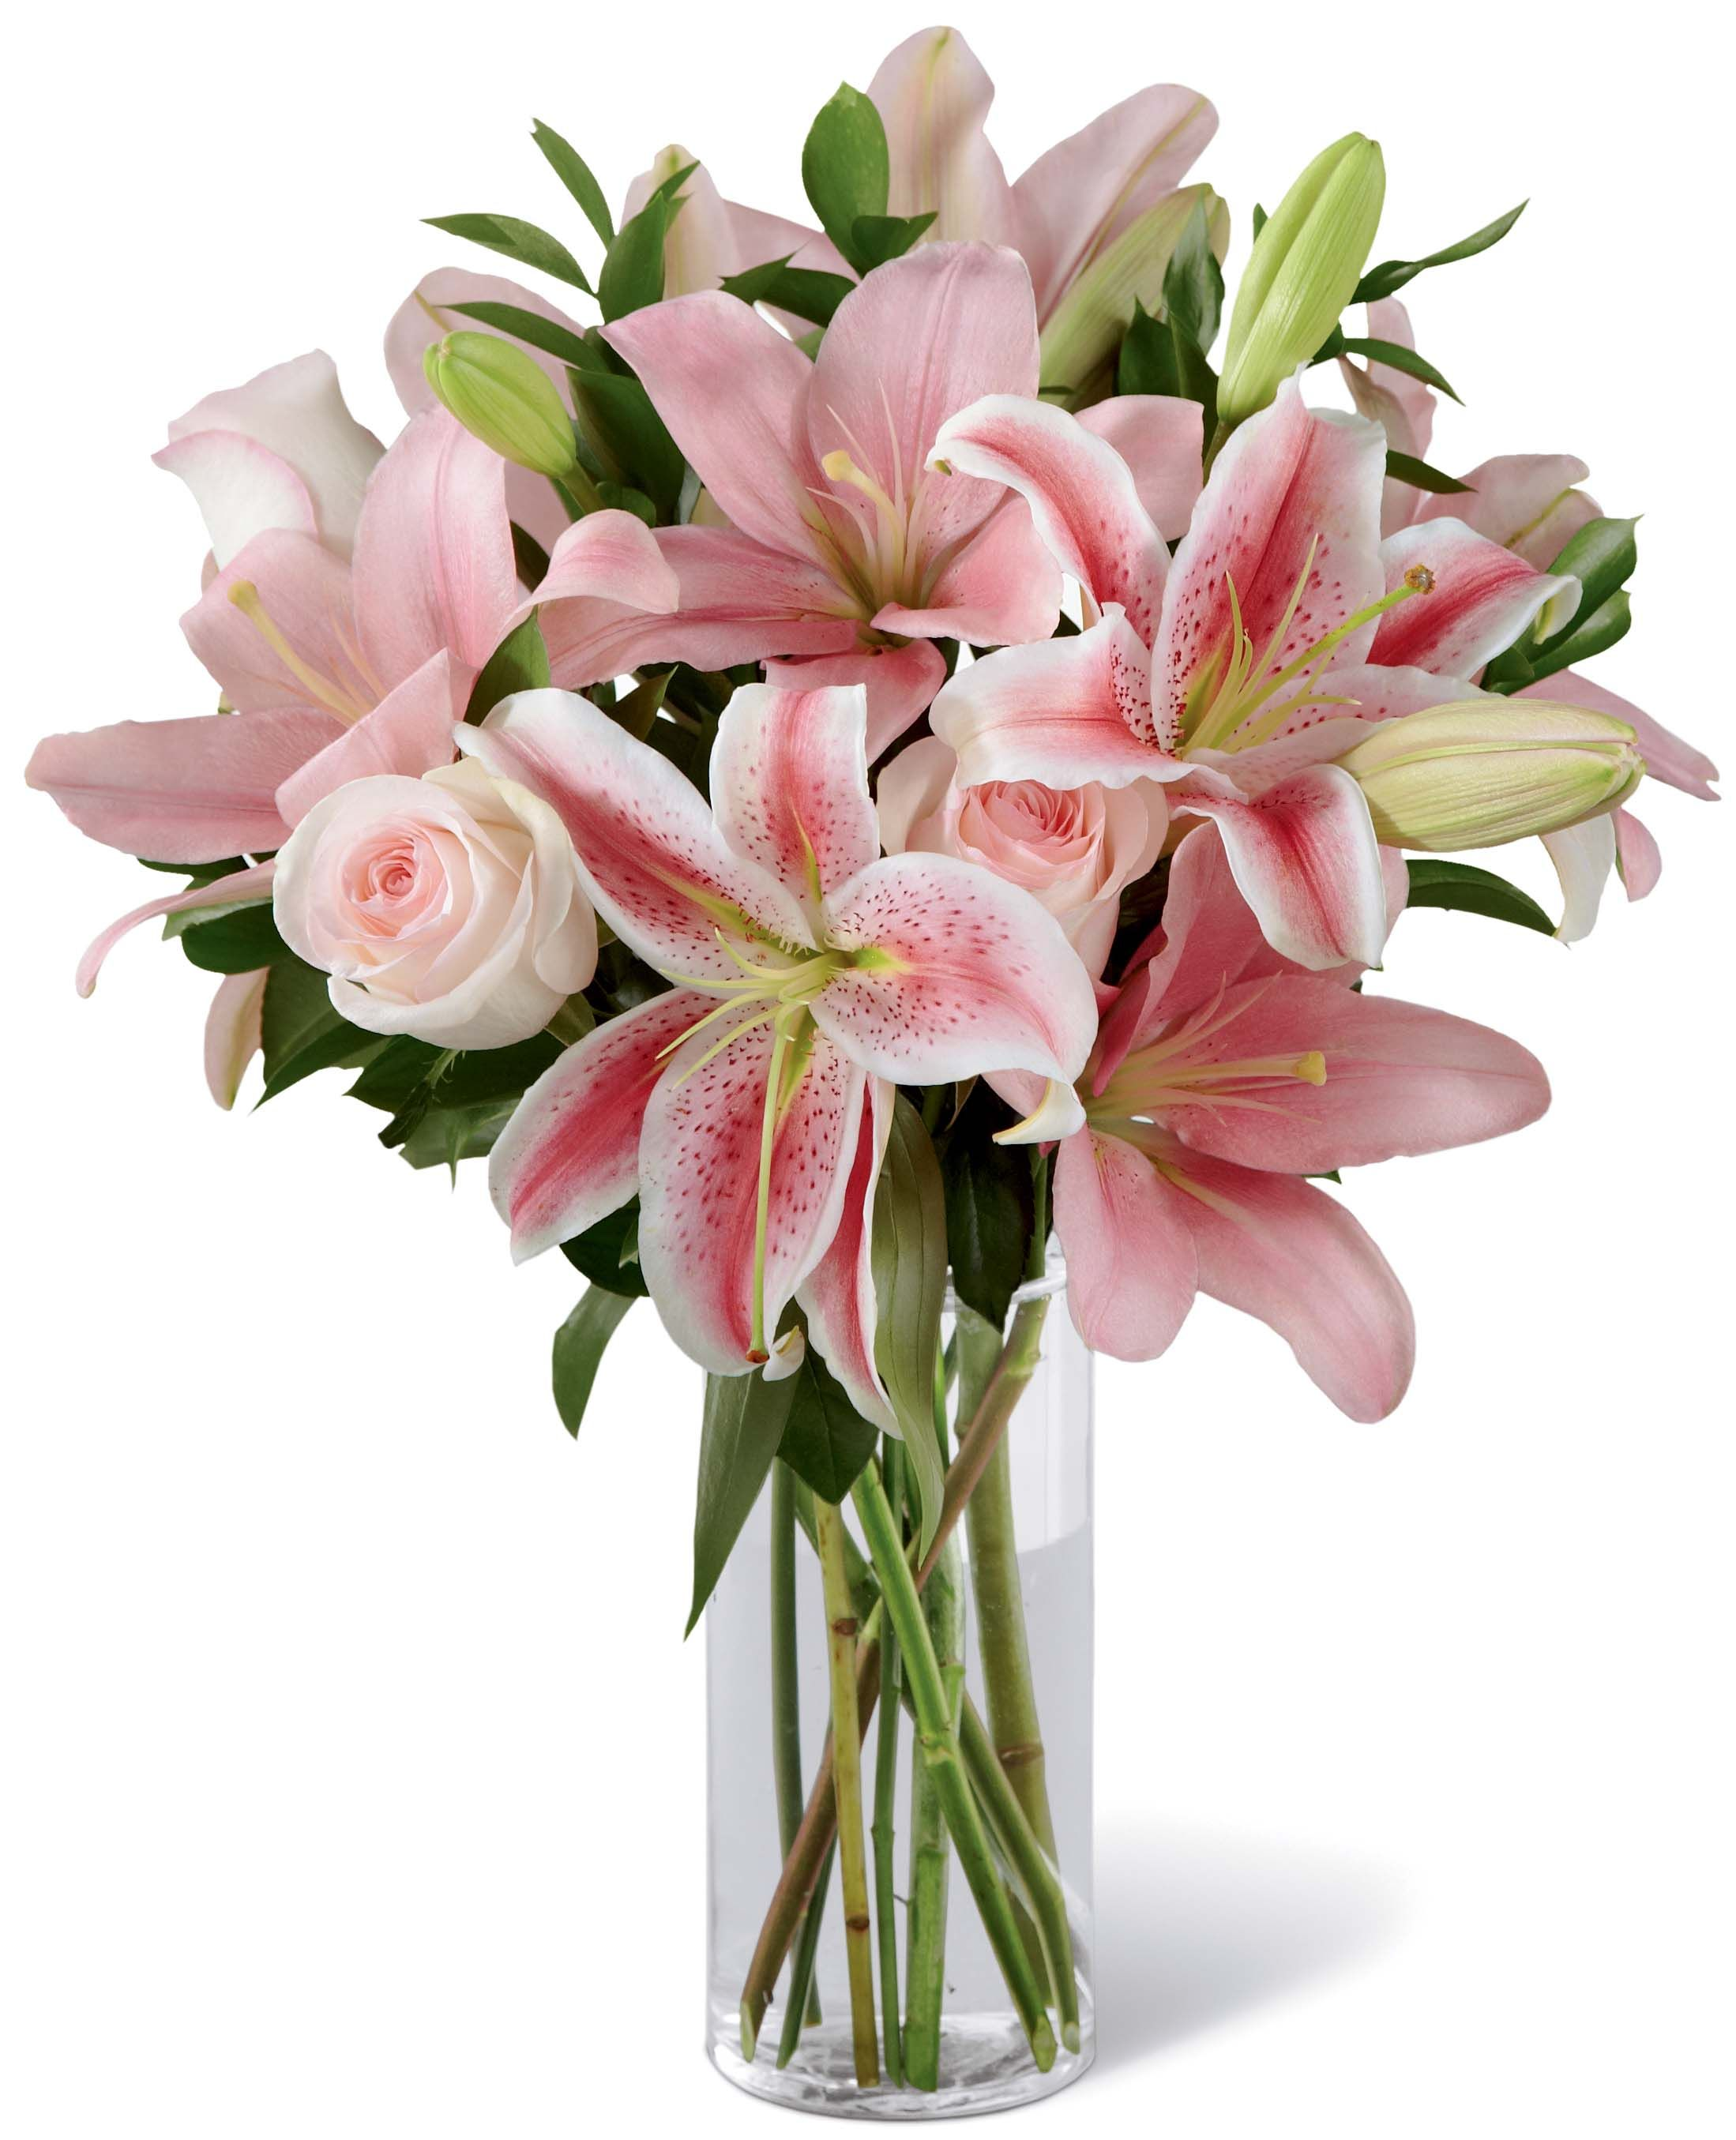 This bundle of pink Lilies(and Roses!) make for an